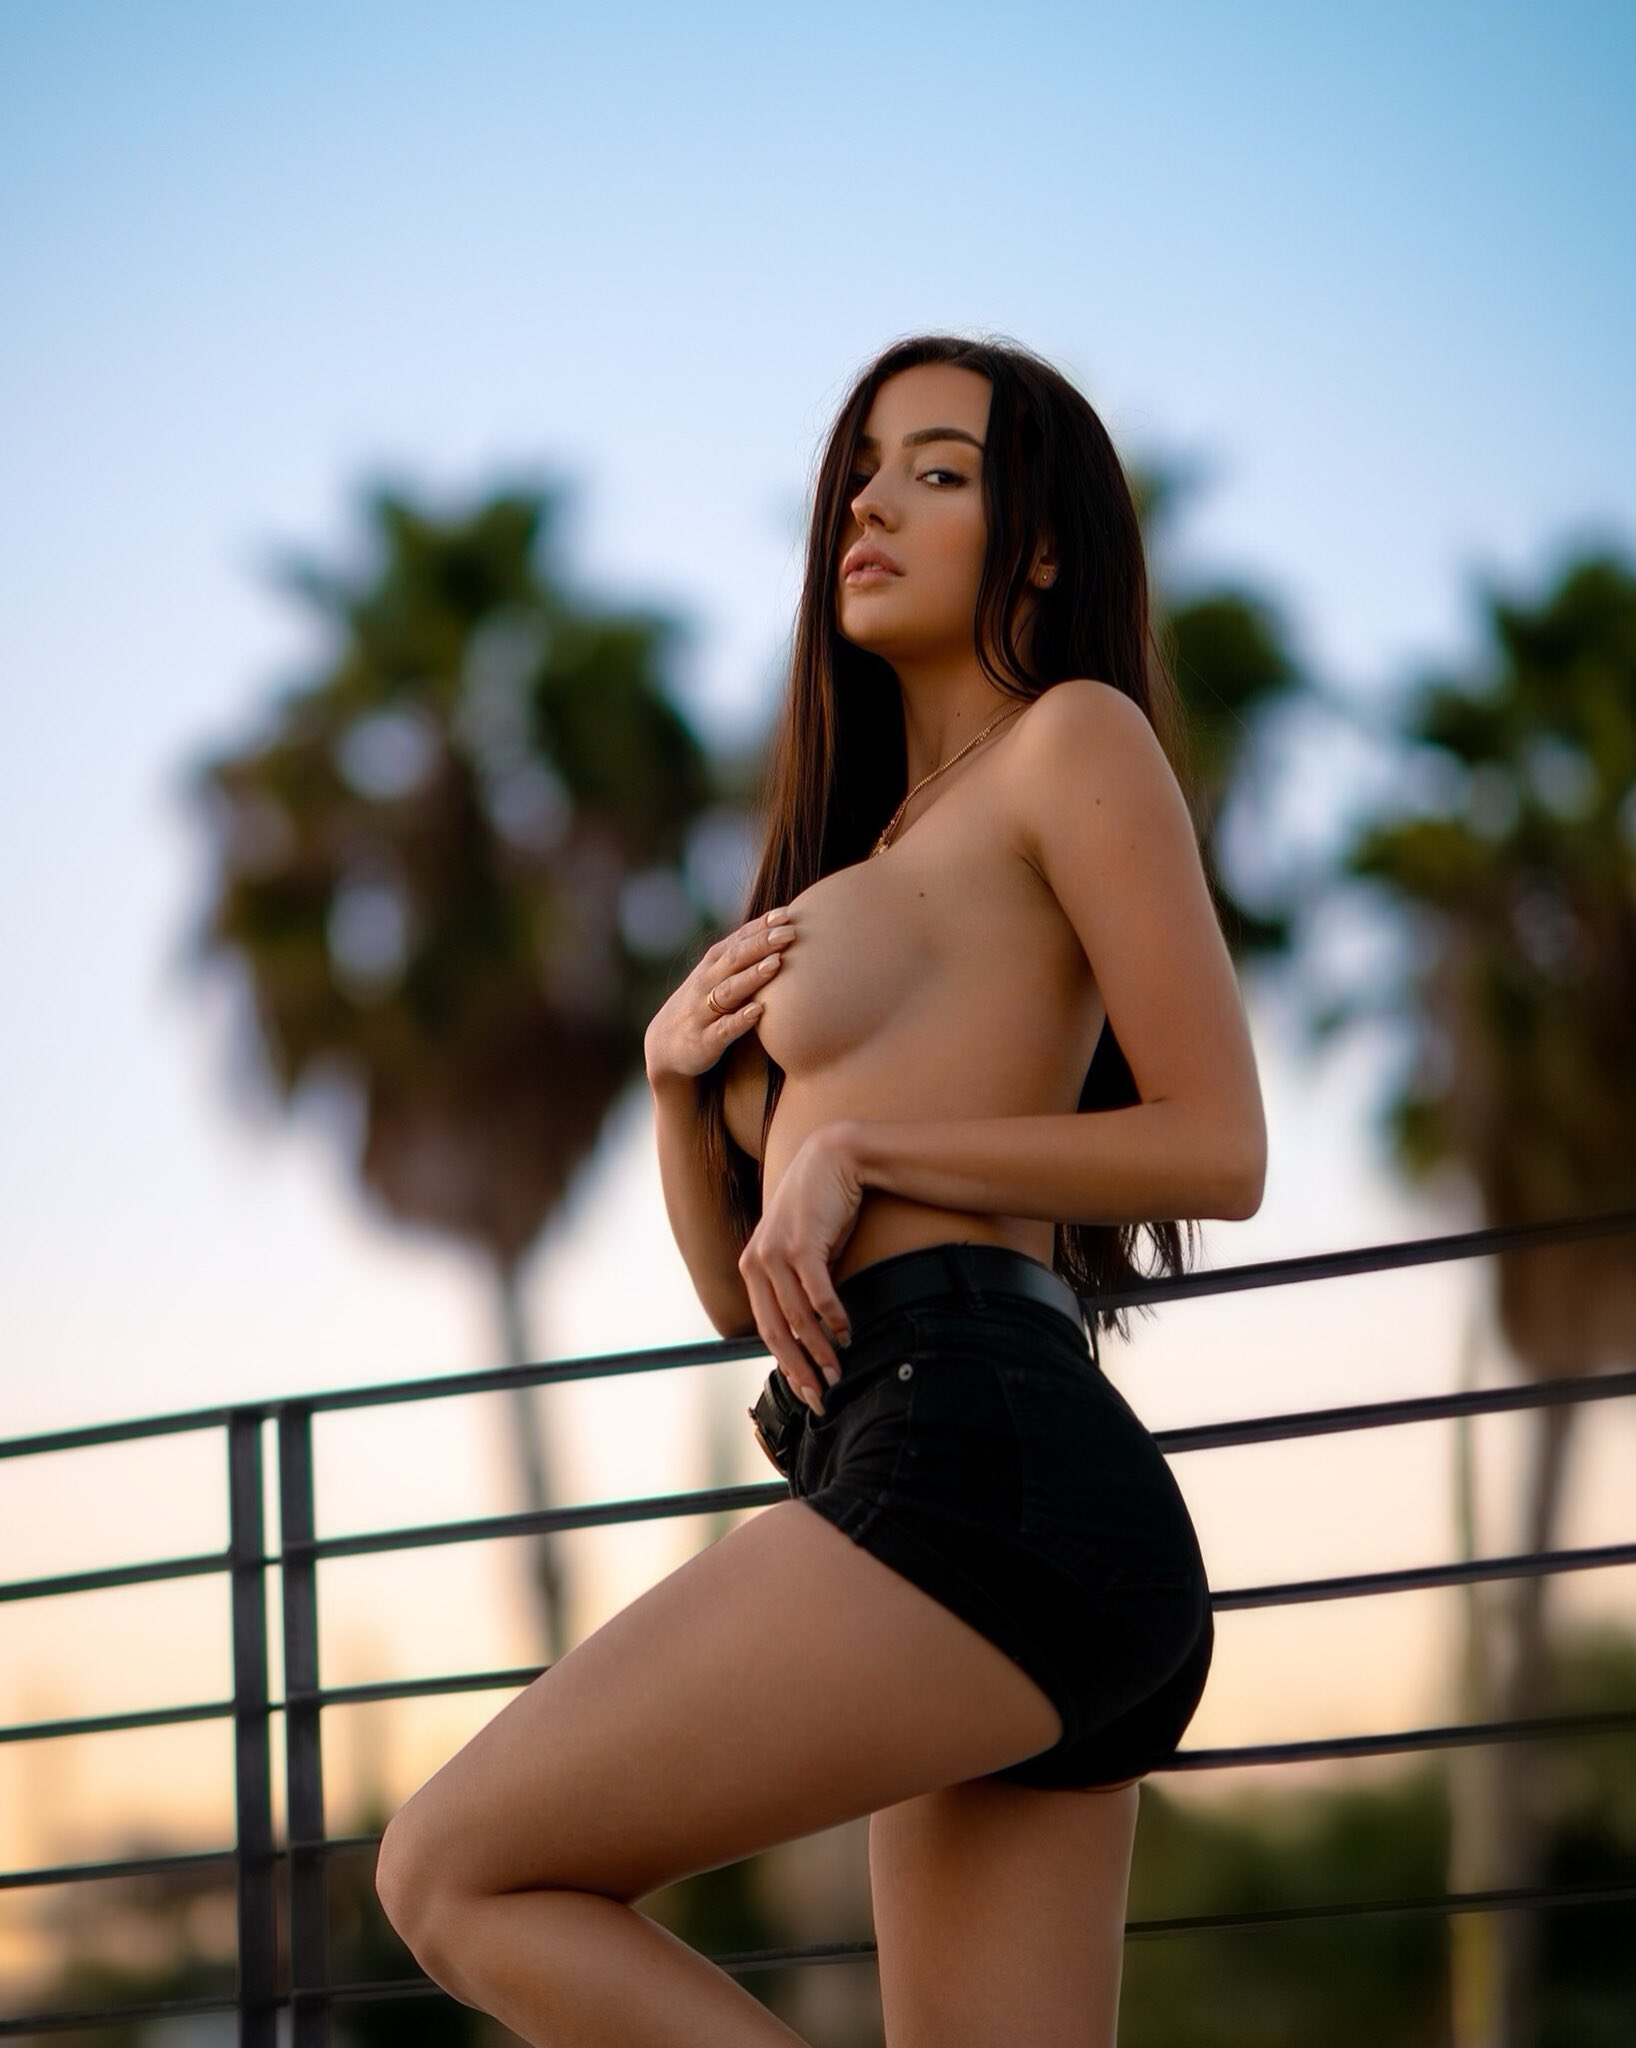 Serena Becker Nude Leaked Videos and Naked Pics! 22